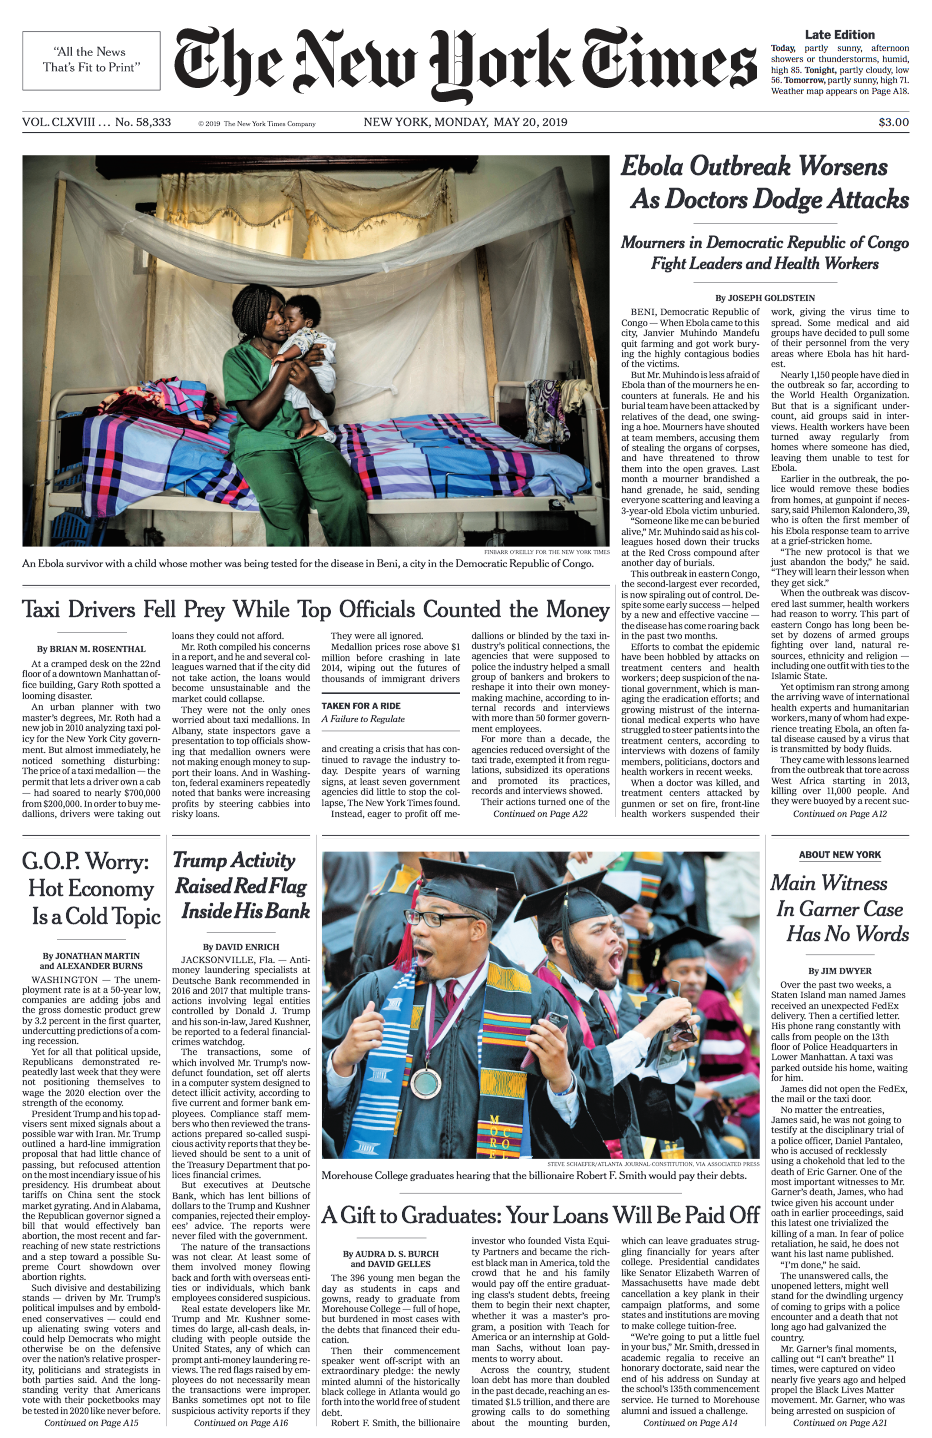 NYT_FrontPage_052019.png